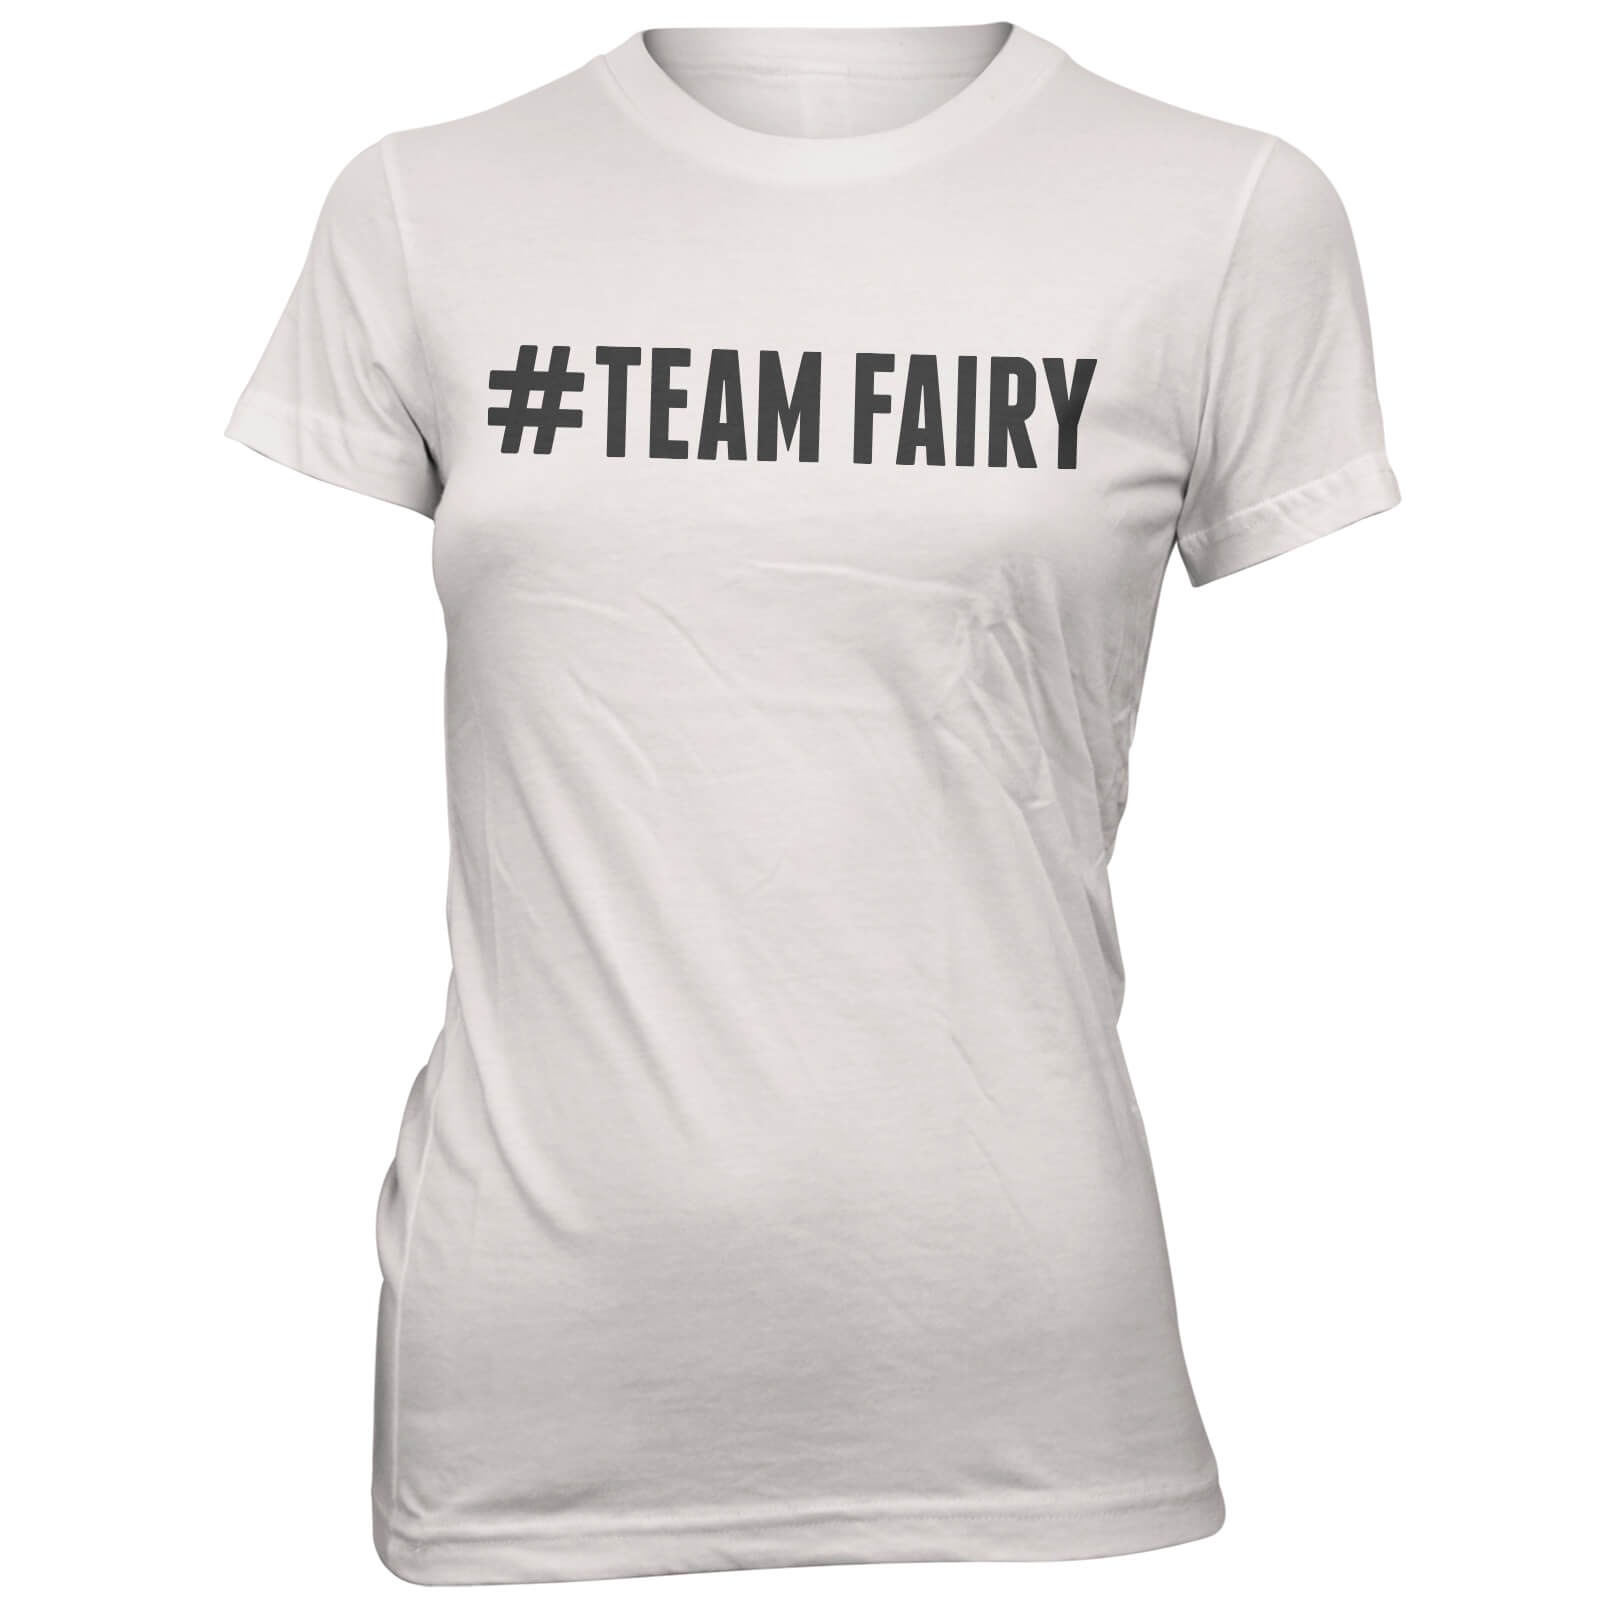 Hashtag Team Fairy Women